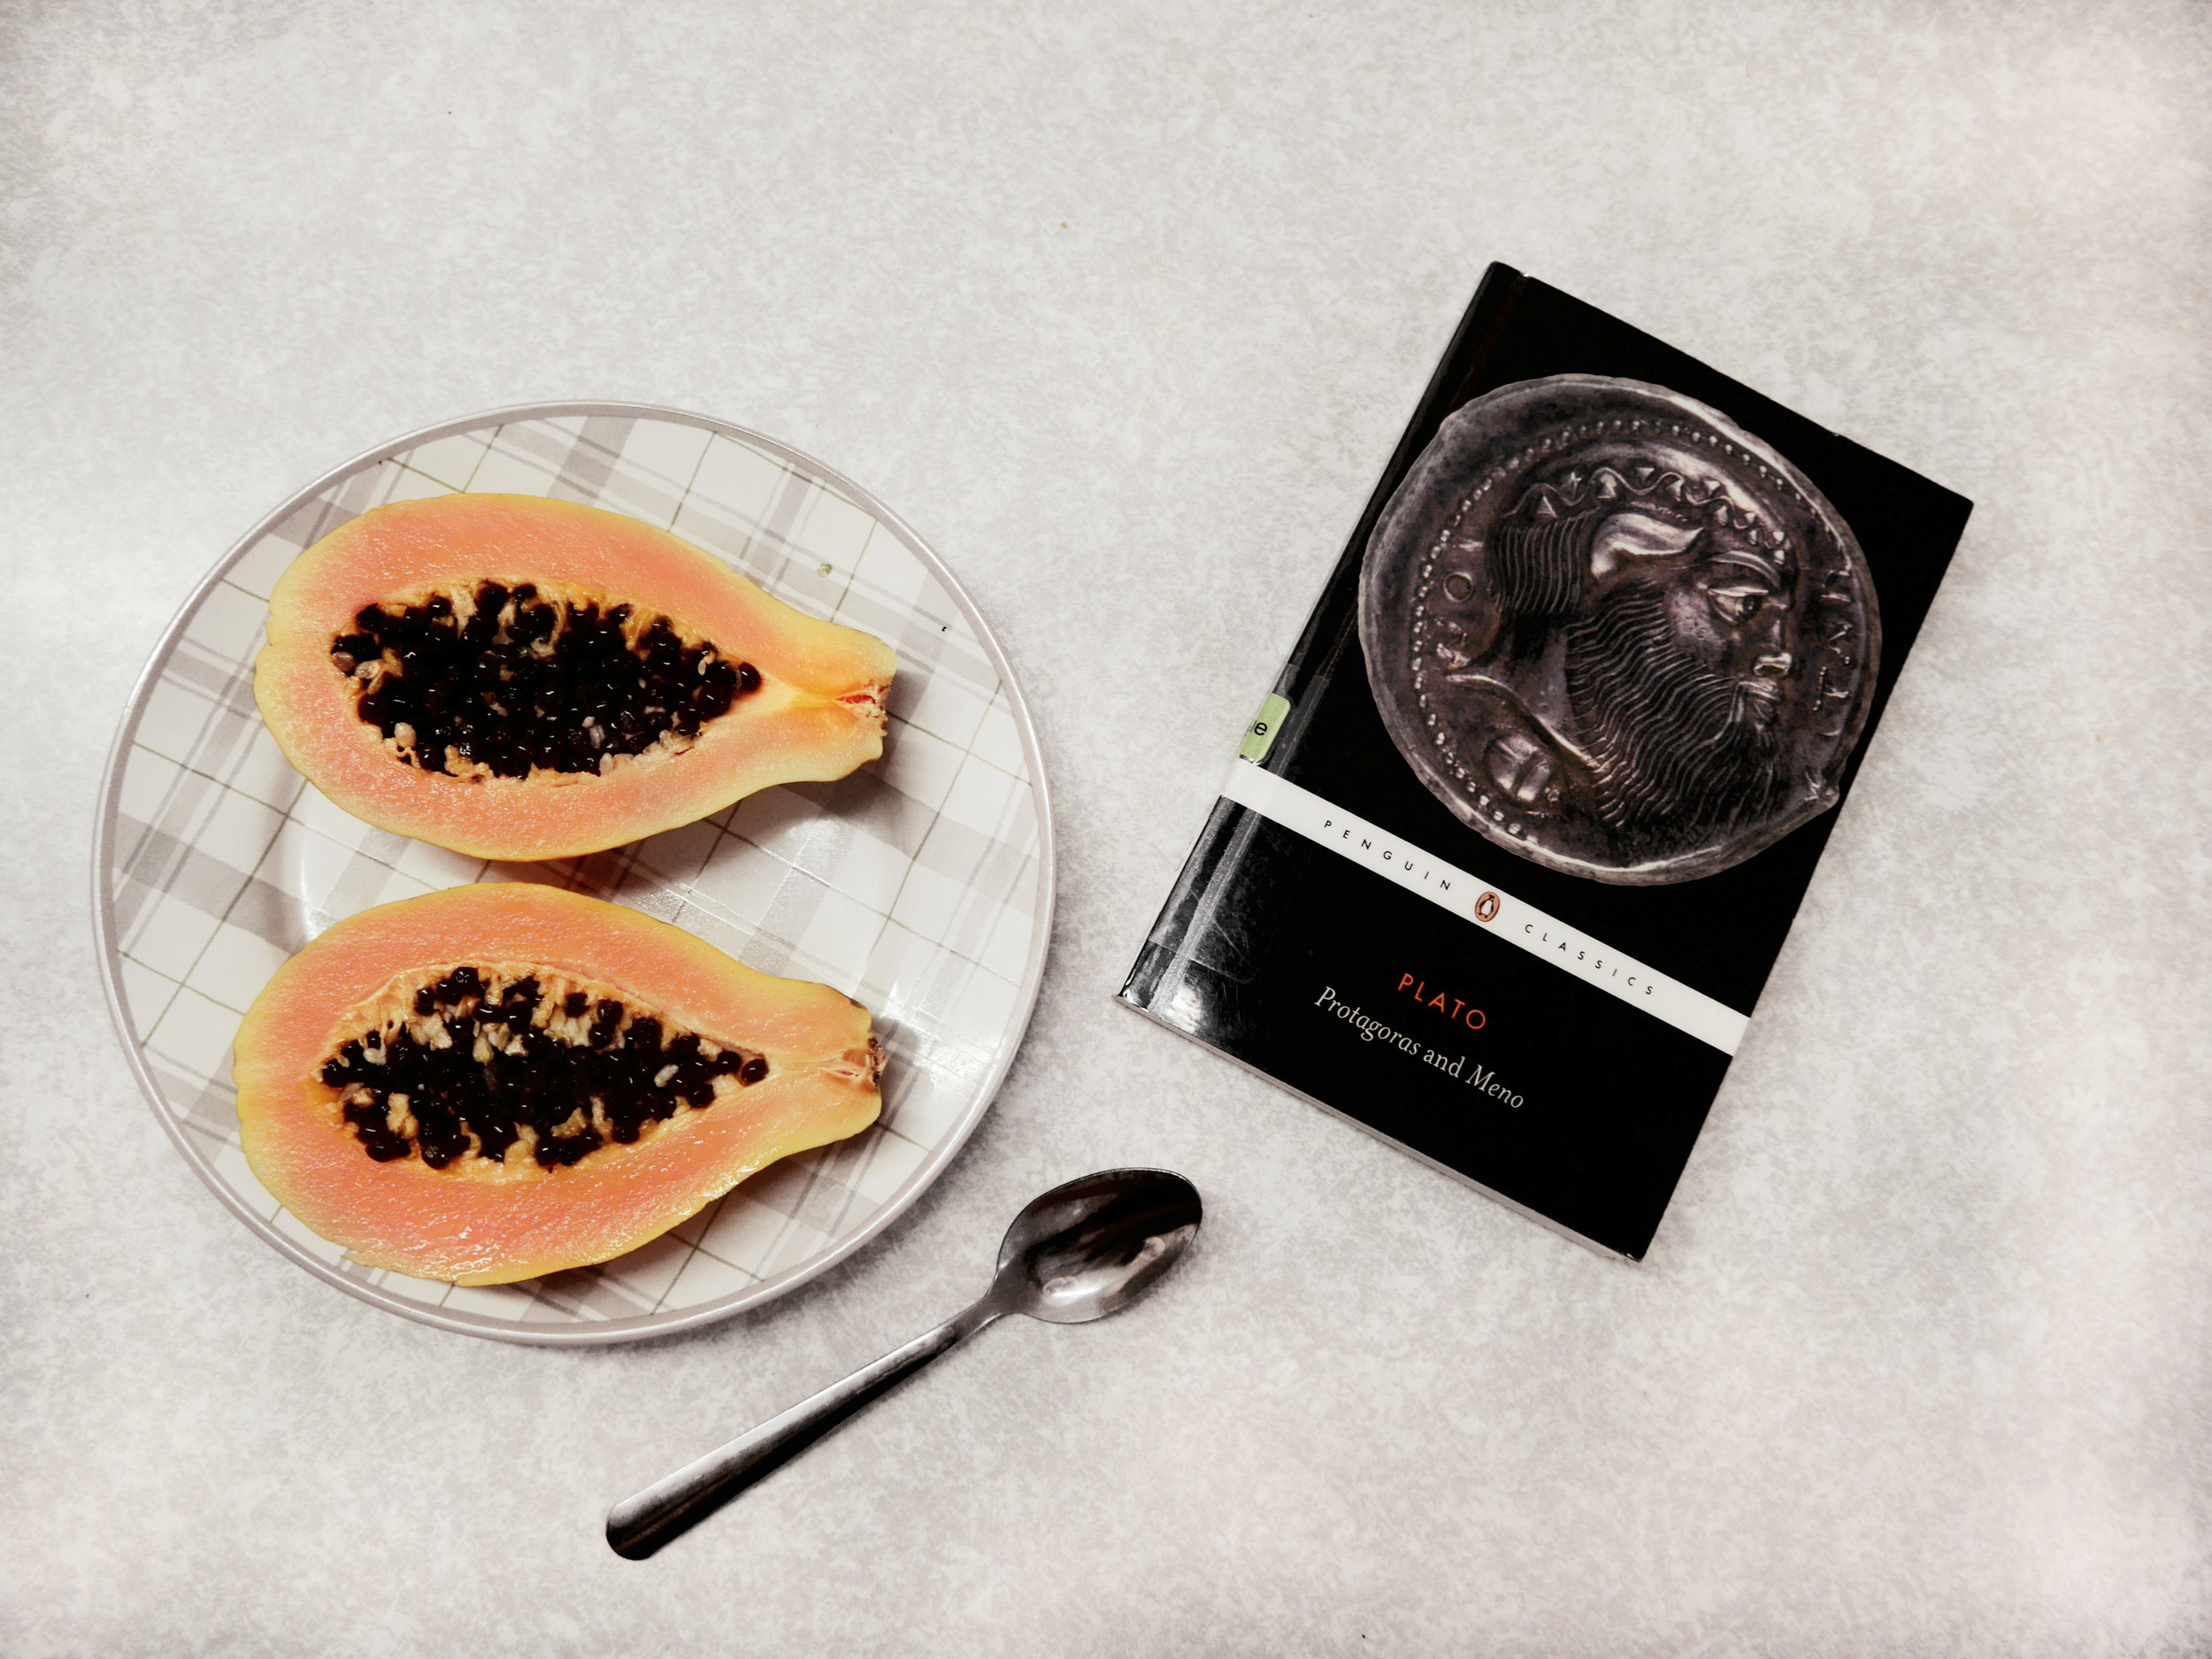 One of my last mornings at university: papaya and Plato. An excellent combination.